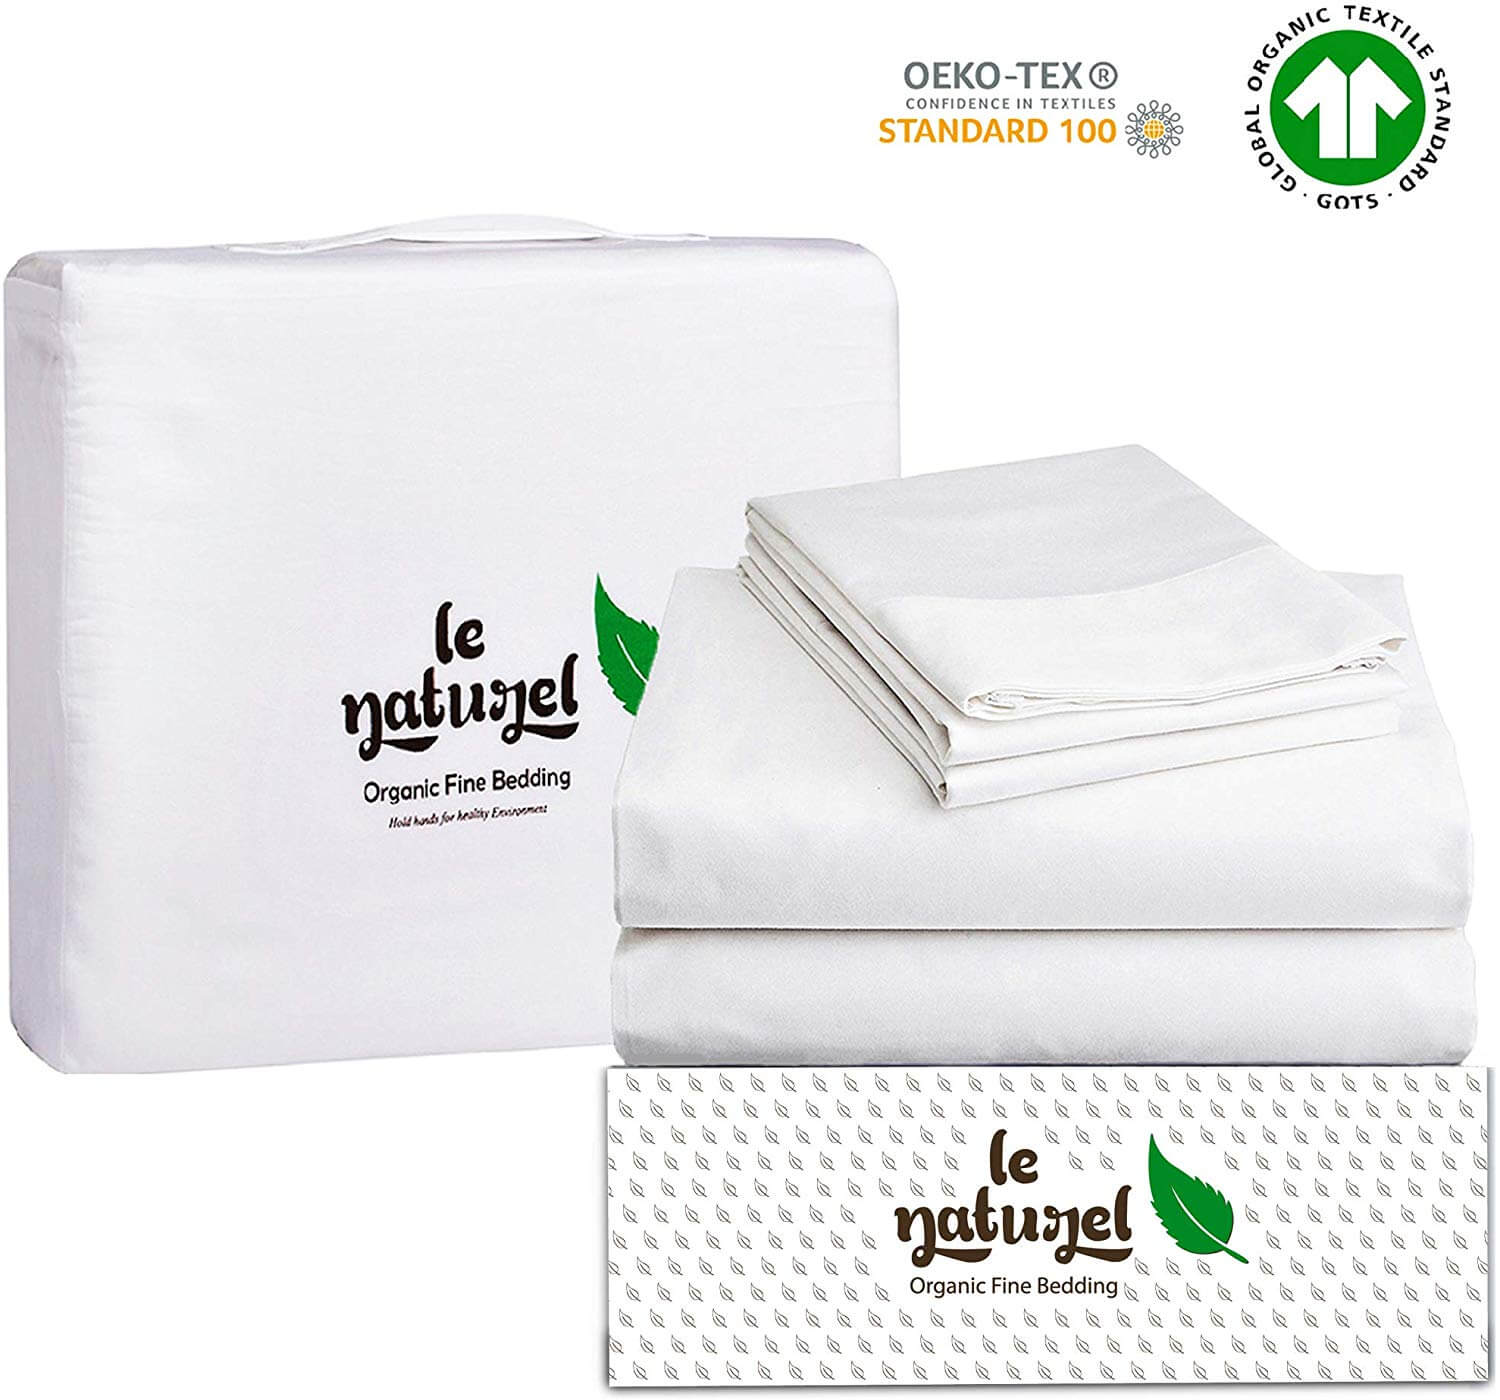 """Le Naturel 300 Thread Count 100% GOTS Certified Organic Cotton Sheet Set Full Size (White) 4 Piece Bedding Sheets for Bed,Soft Sateen Weave bedsheets Set,Fits Upto 16"""" Deep Pocket Mattress"""